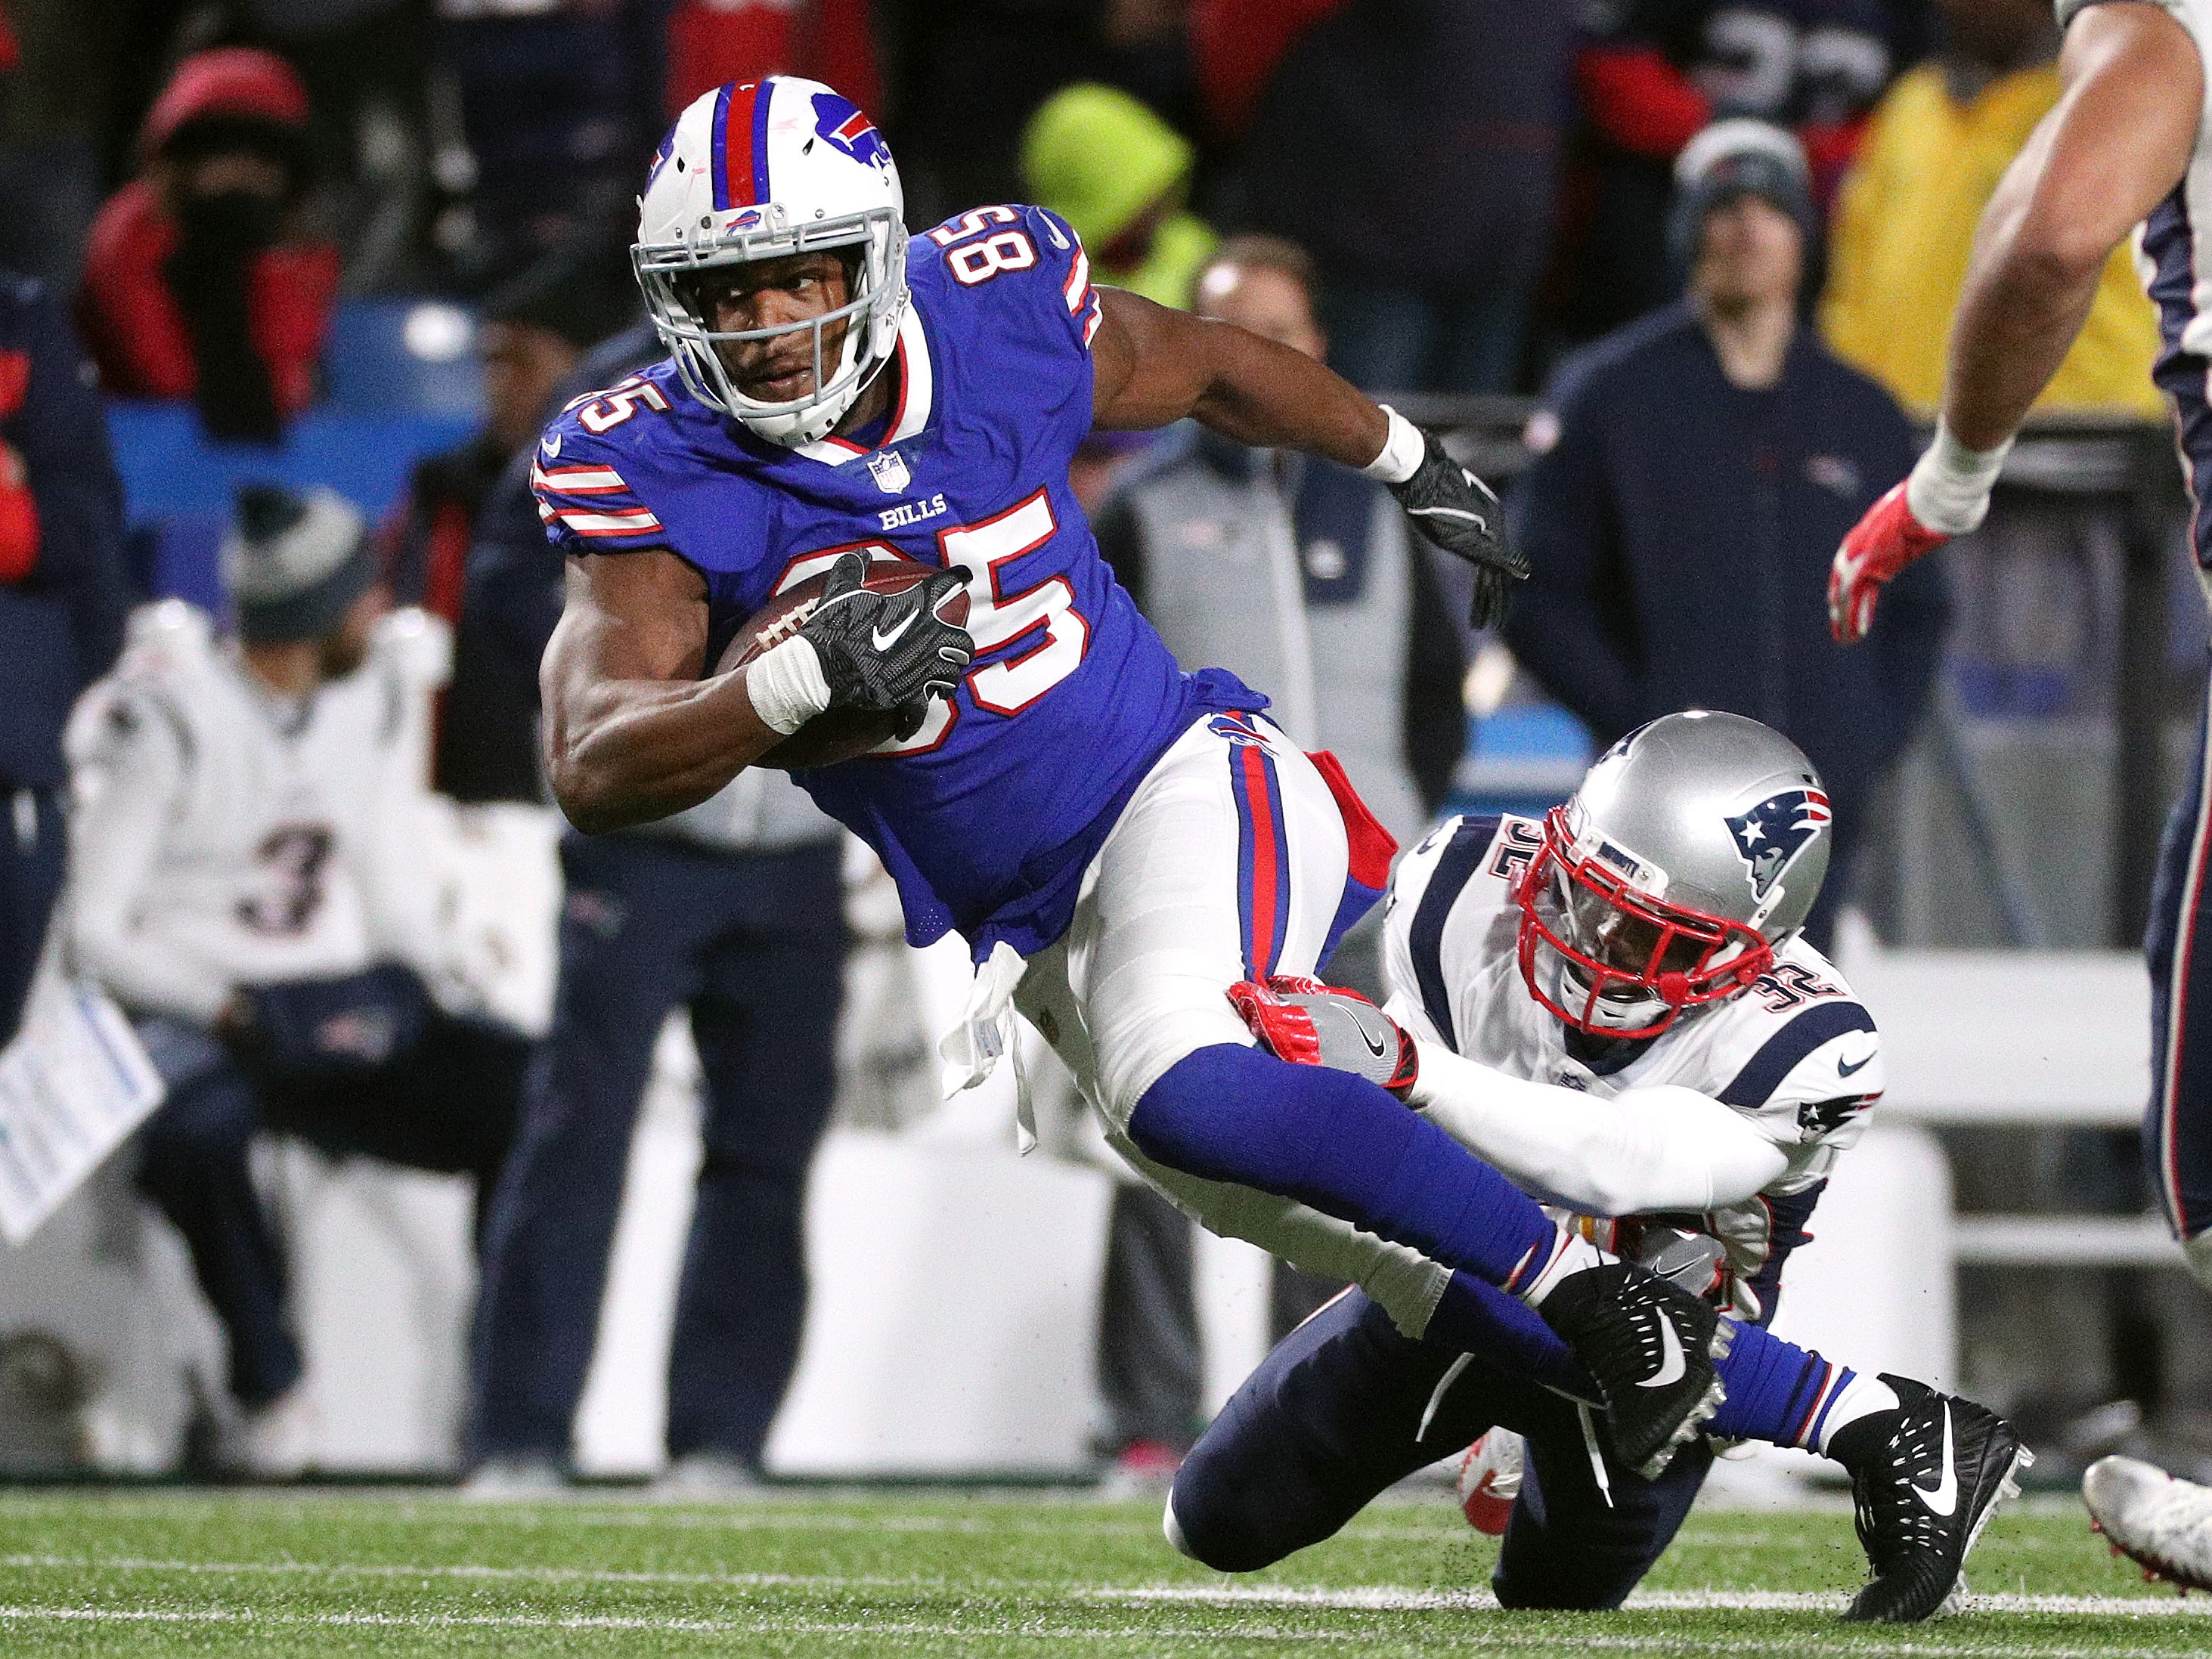 Bills tight end Charles Clay makes a catch over the middle against the Patriots.